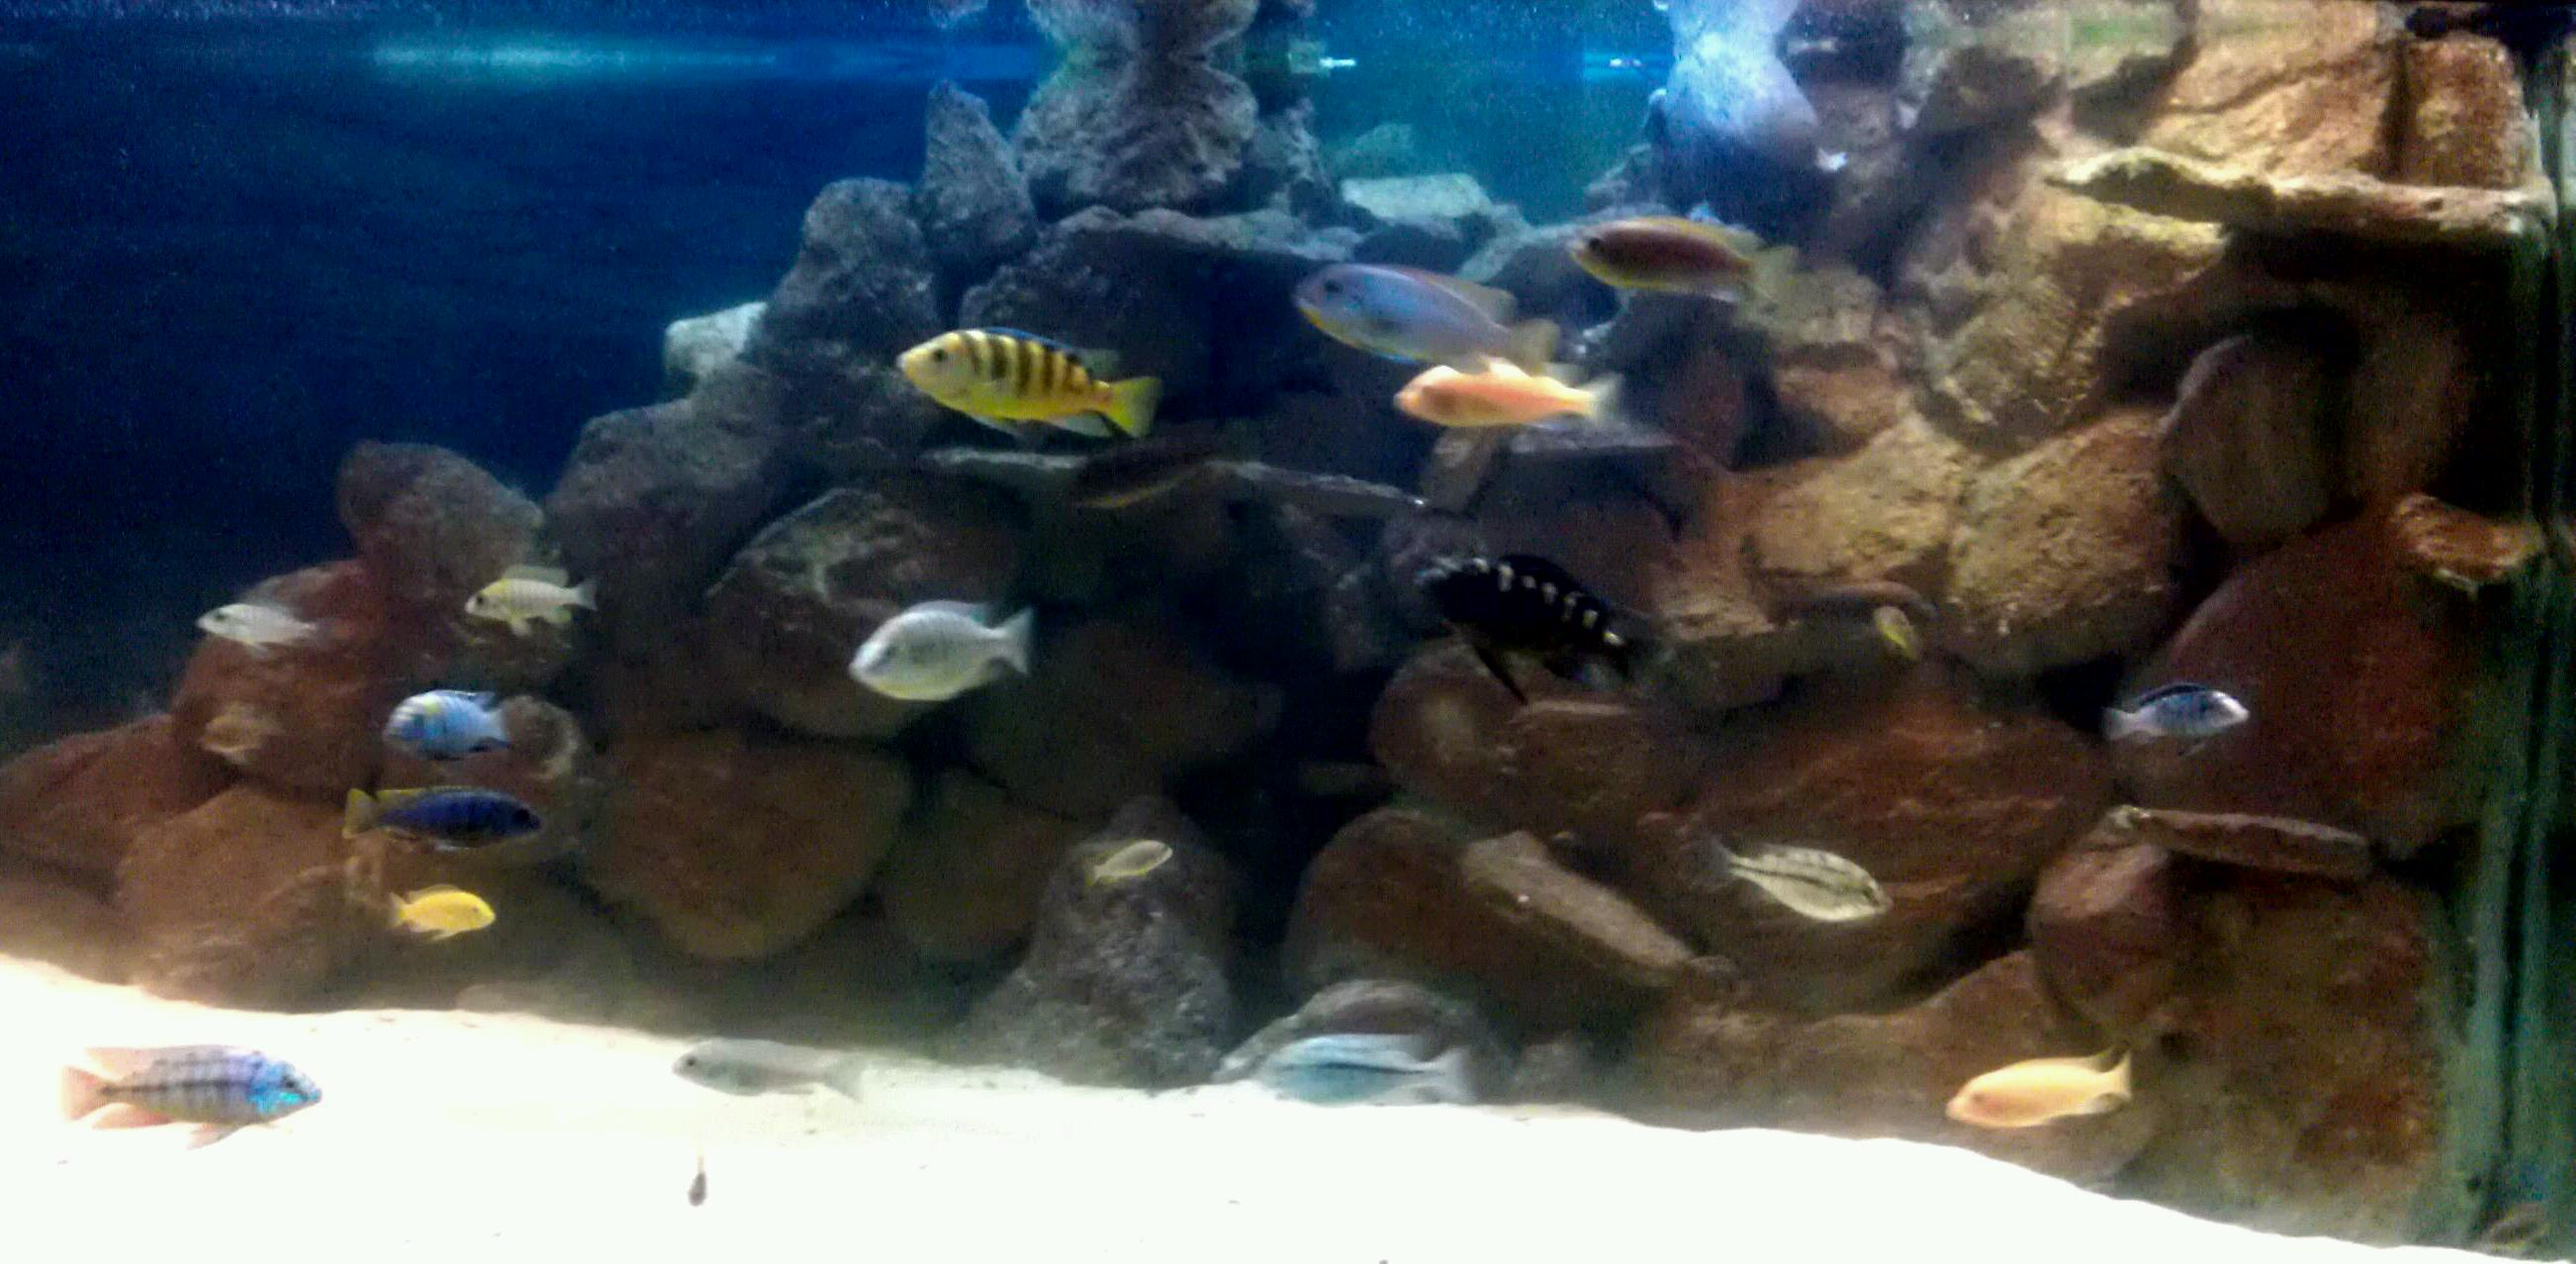 Freshwater fish store near me - 1776 Arnold Industrial Way Concord Ca 94520 Near Lowes And Kinders Meats